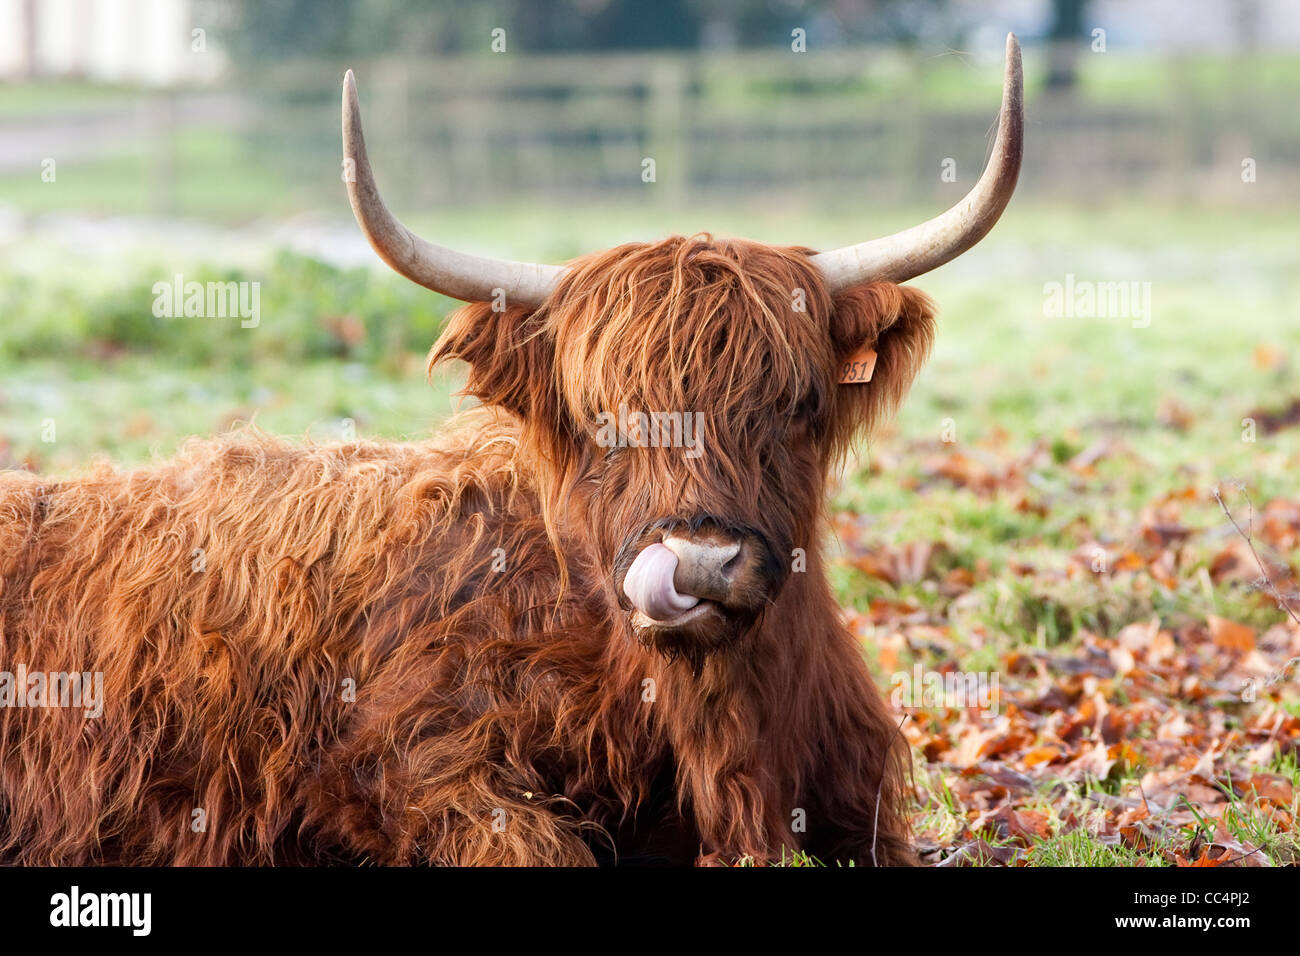 Highland Cow Licking Nose Close up on frosty autumn day - Stock Image